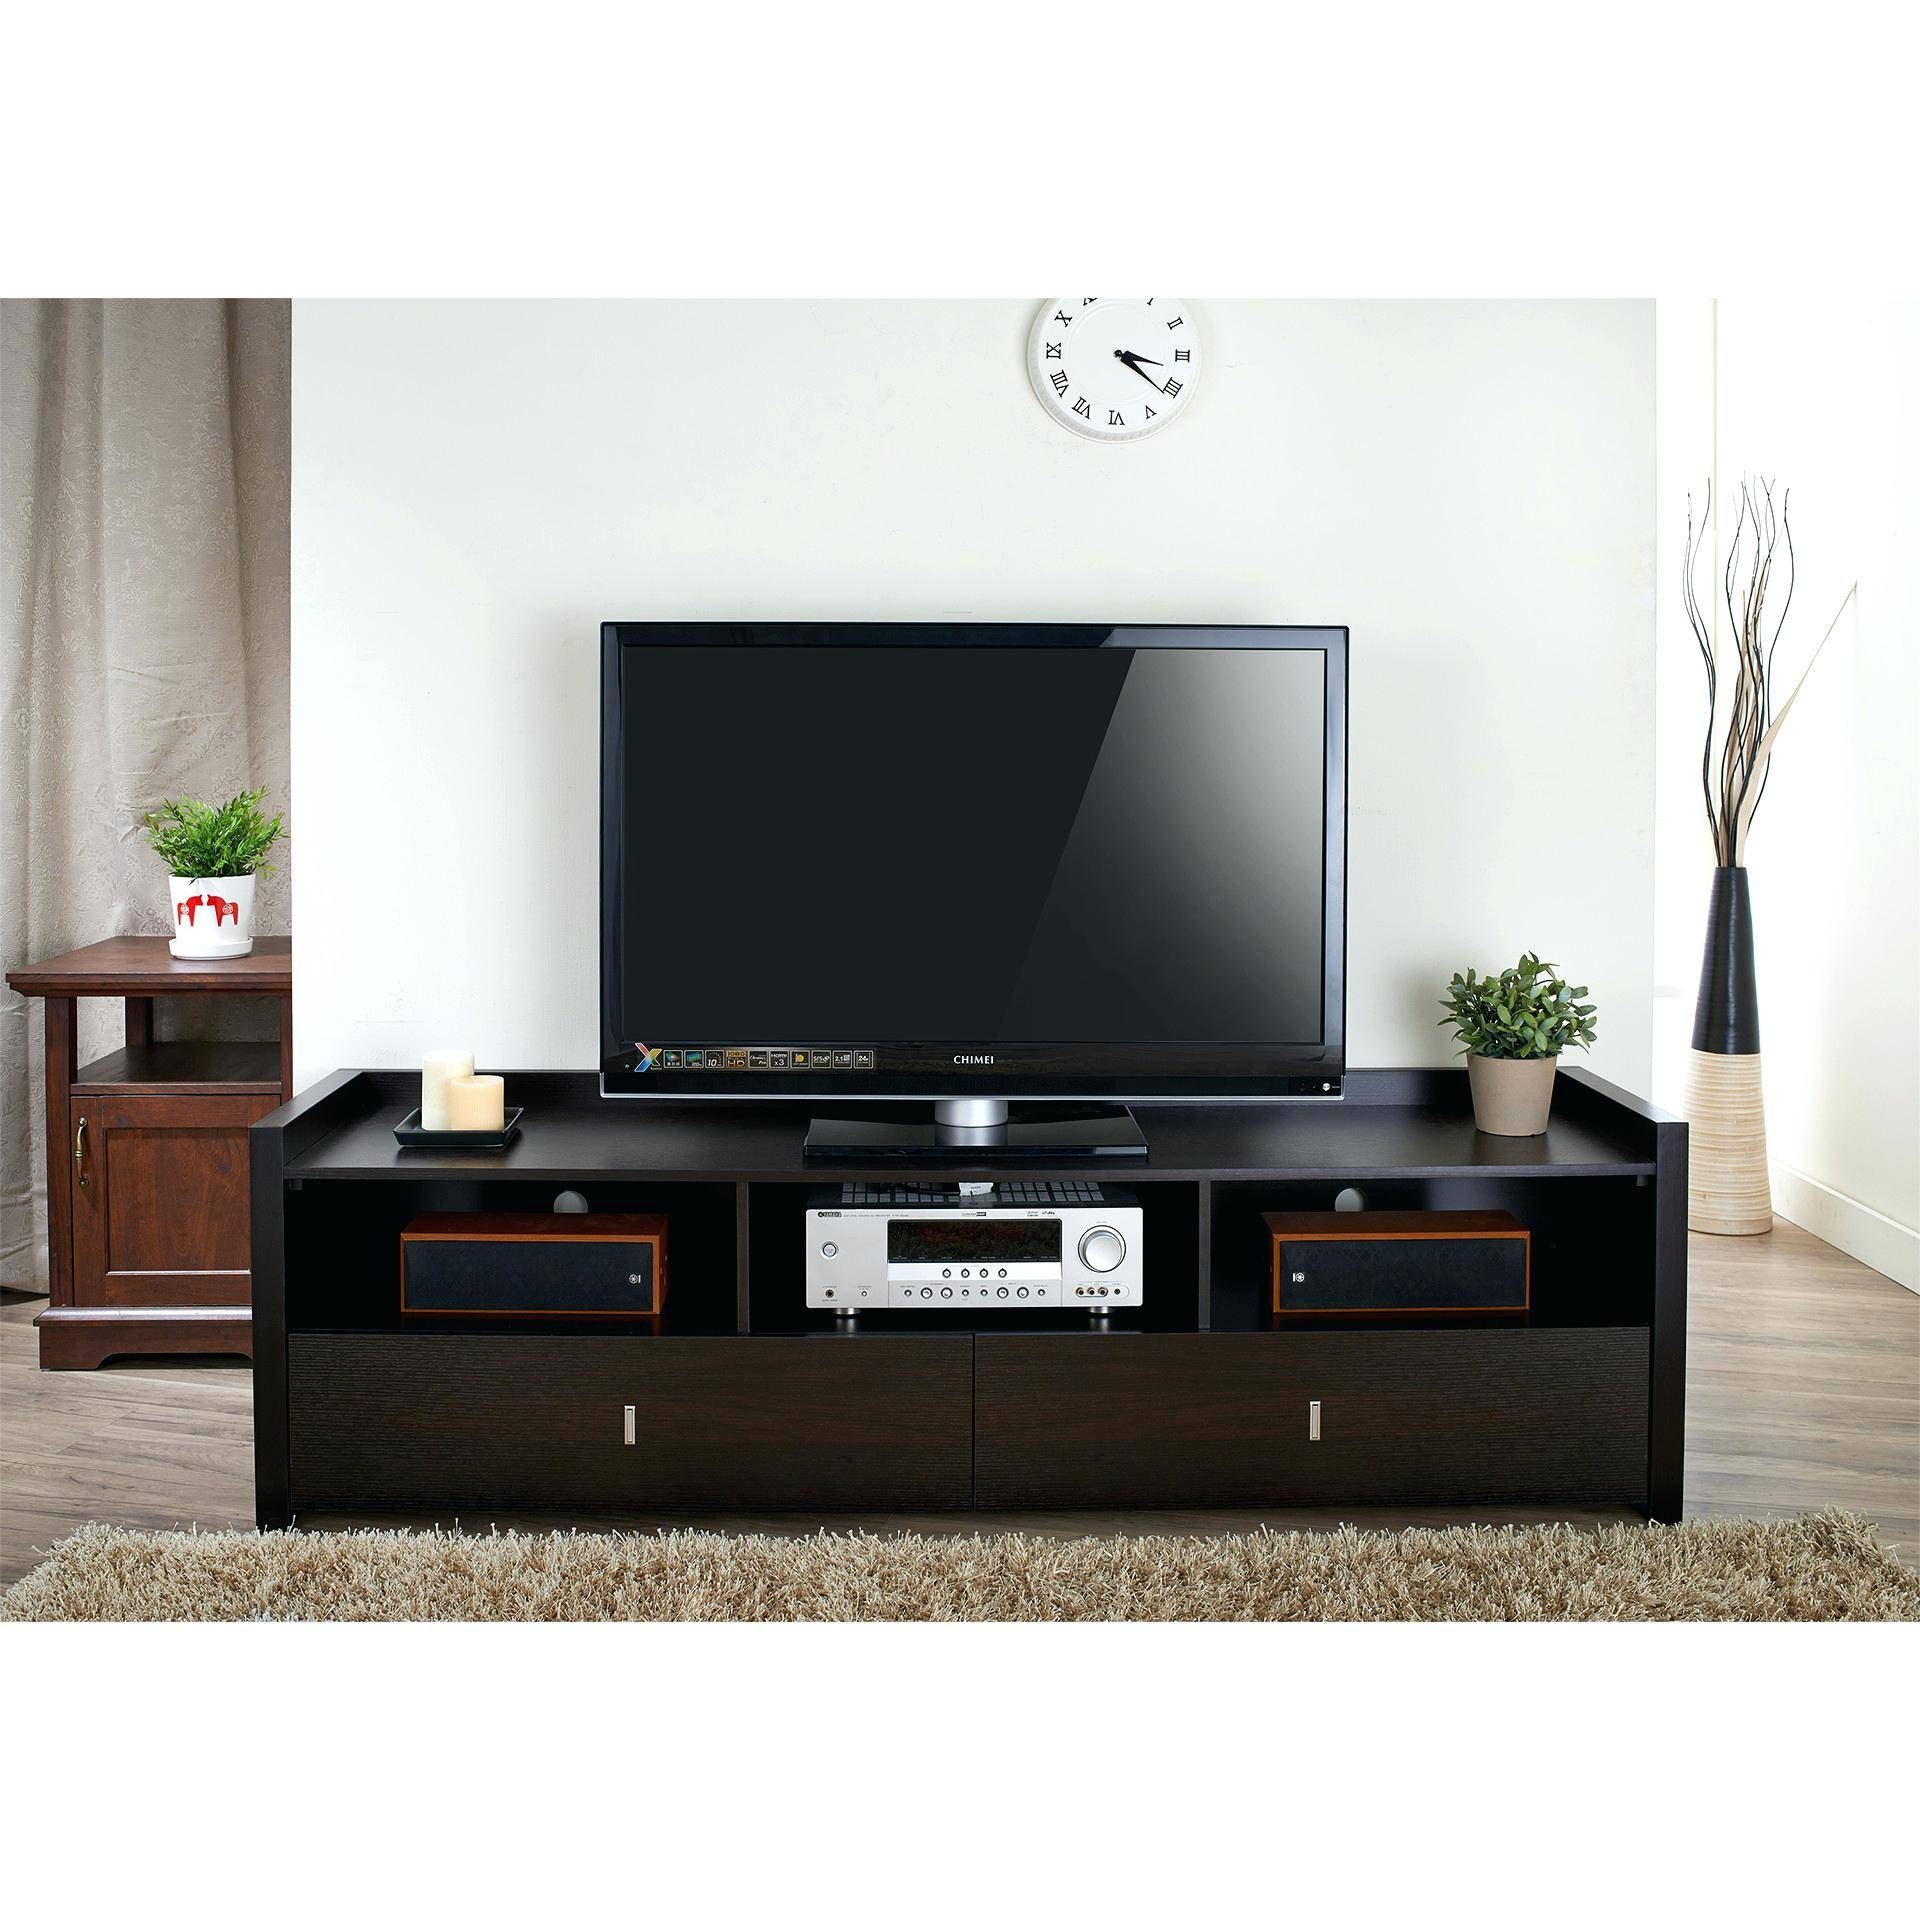 Tv Stand : Cool Brusali Tv Unit White Width 47 1 4 Depth 14 1 With Shiny Black Tv Stands (View 11 of 15)